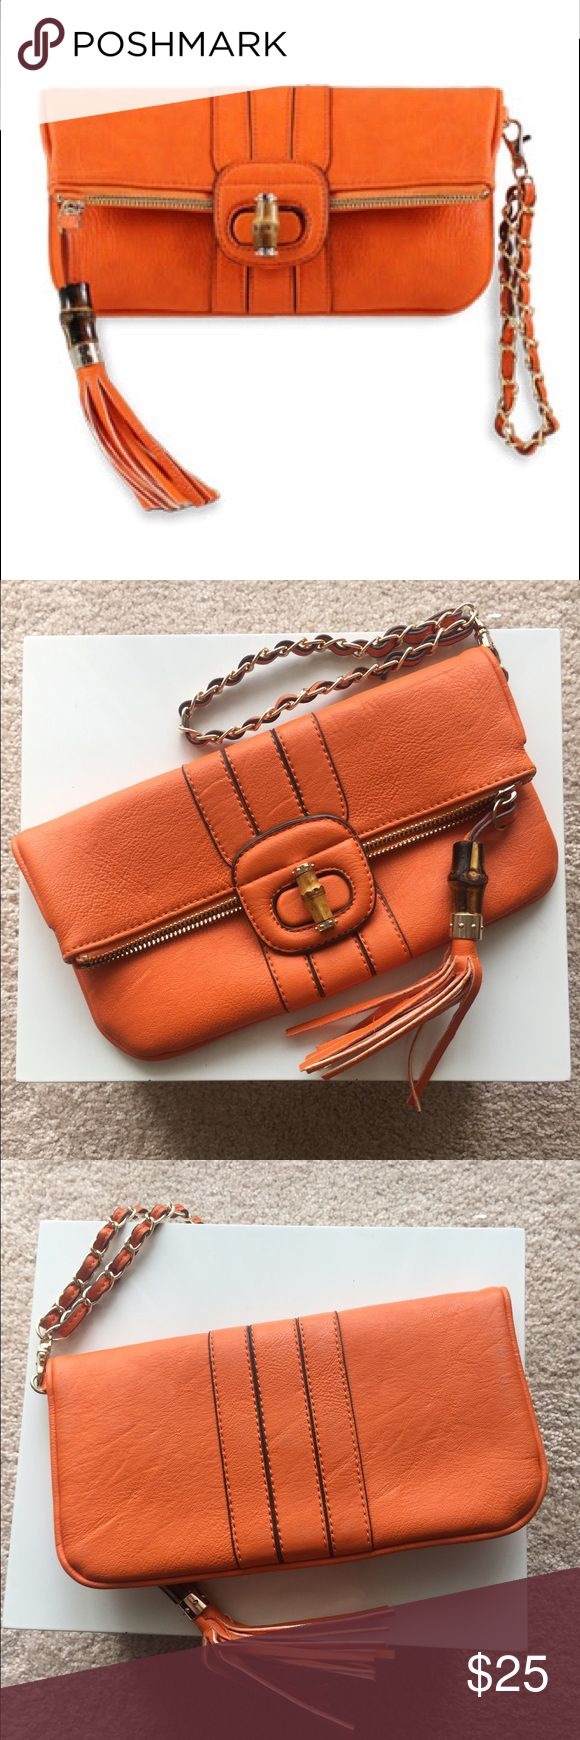 Melie Bianco Equestrian Orange Bamboo Clutch Equestrian orange foldover clutch with wristlet, which makes it very functional. Approximately 9.5 inches long and roughly 6 inches tall when folded over. Melie Bianco Bags Clutches & Wristlets